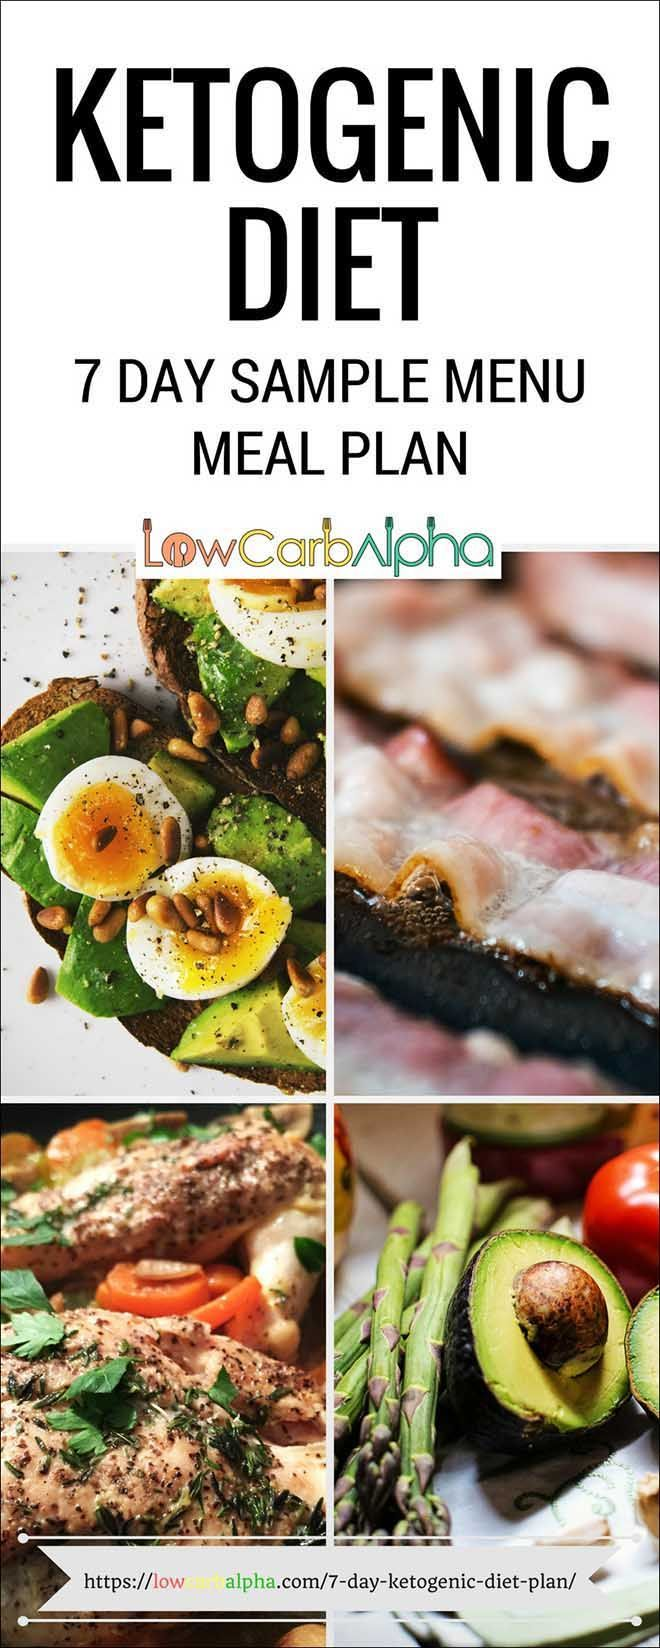 7 Day Sample Menu Meal Plan for a Ketogenic Dietþ